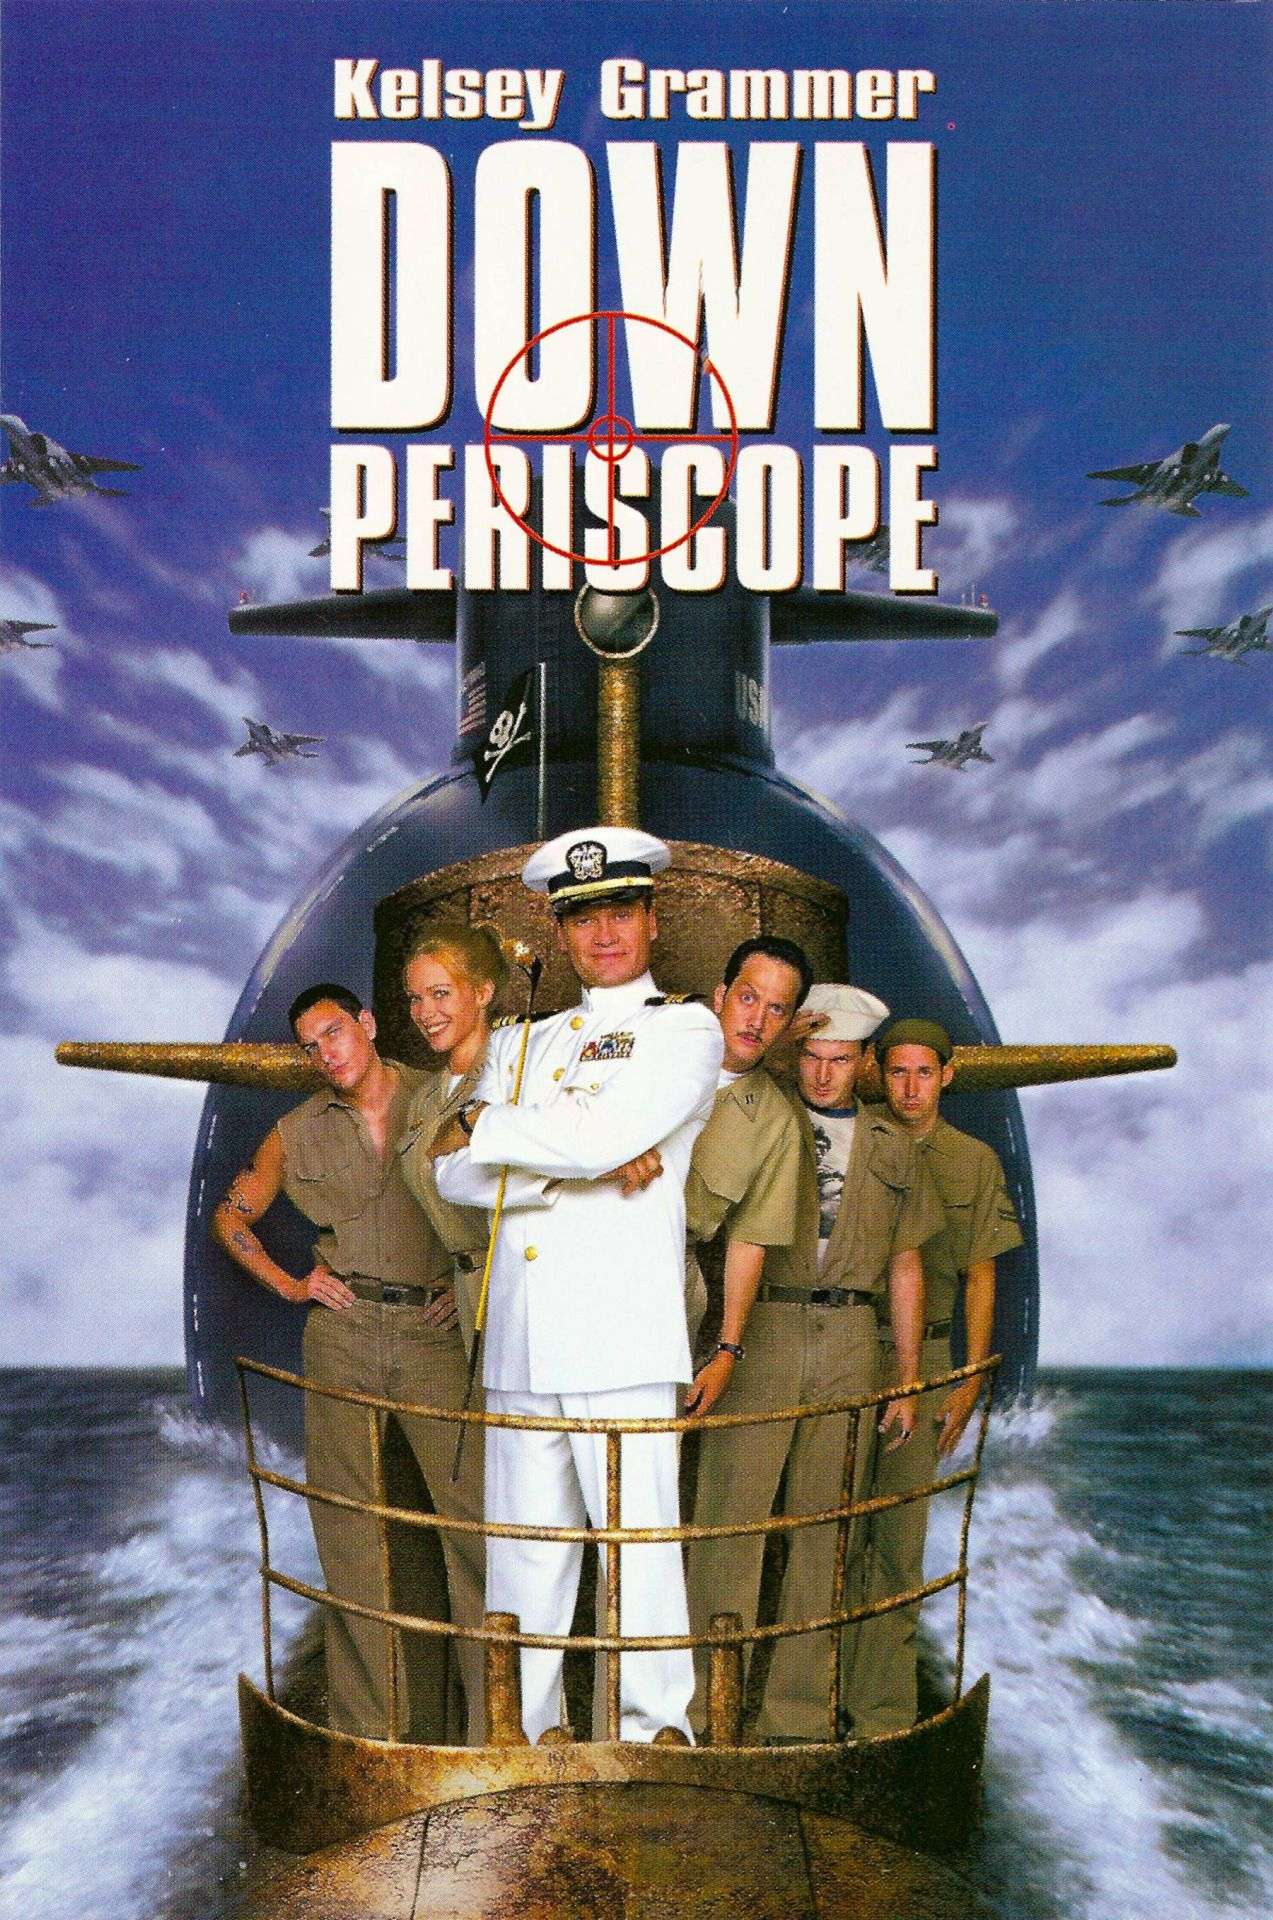 Down Periscope (1996) (With images) Submarine movie